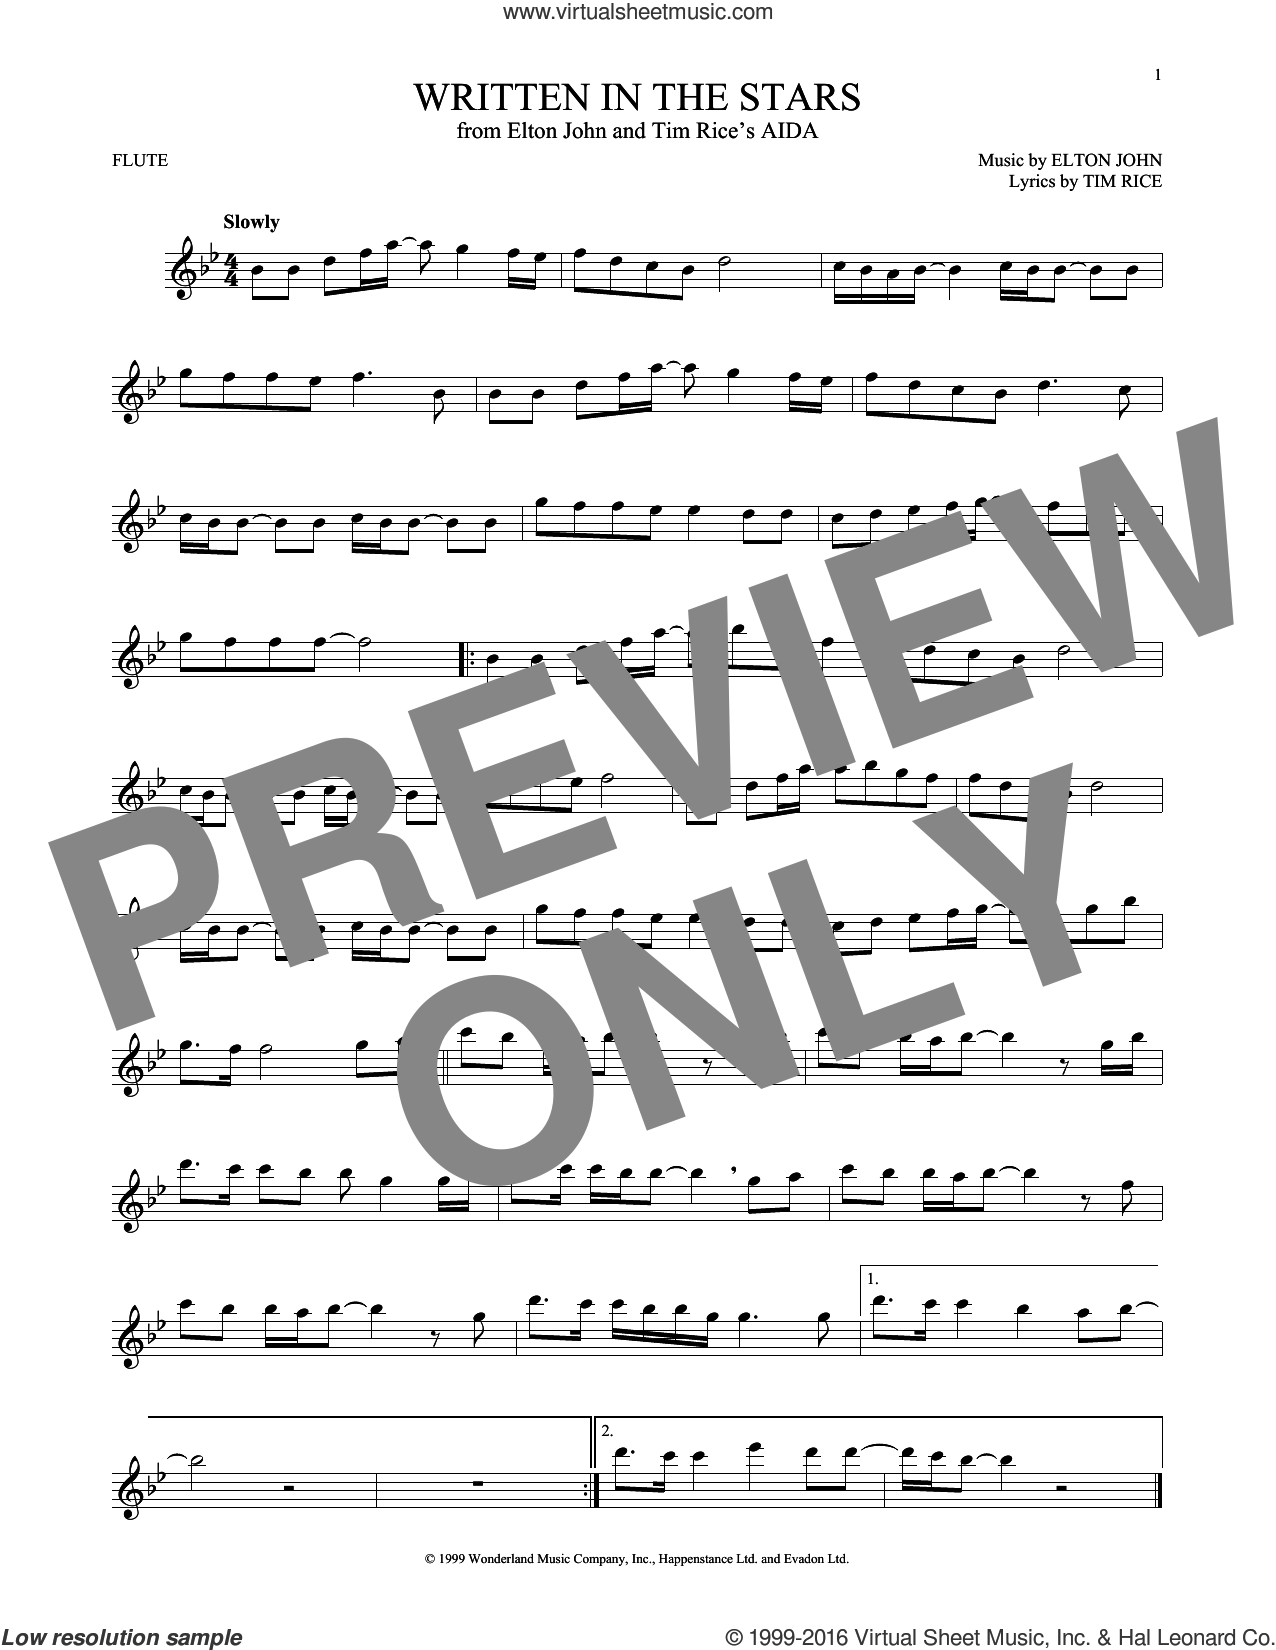 Written In The Stars sheet music for flute solo by Elton John and Tim Rice, intermediate